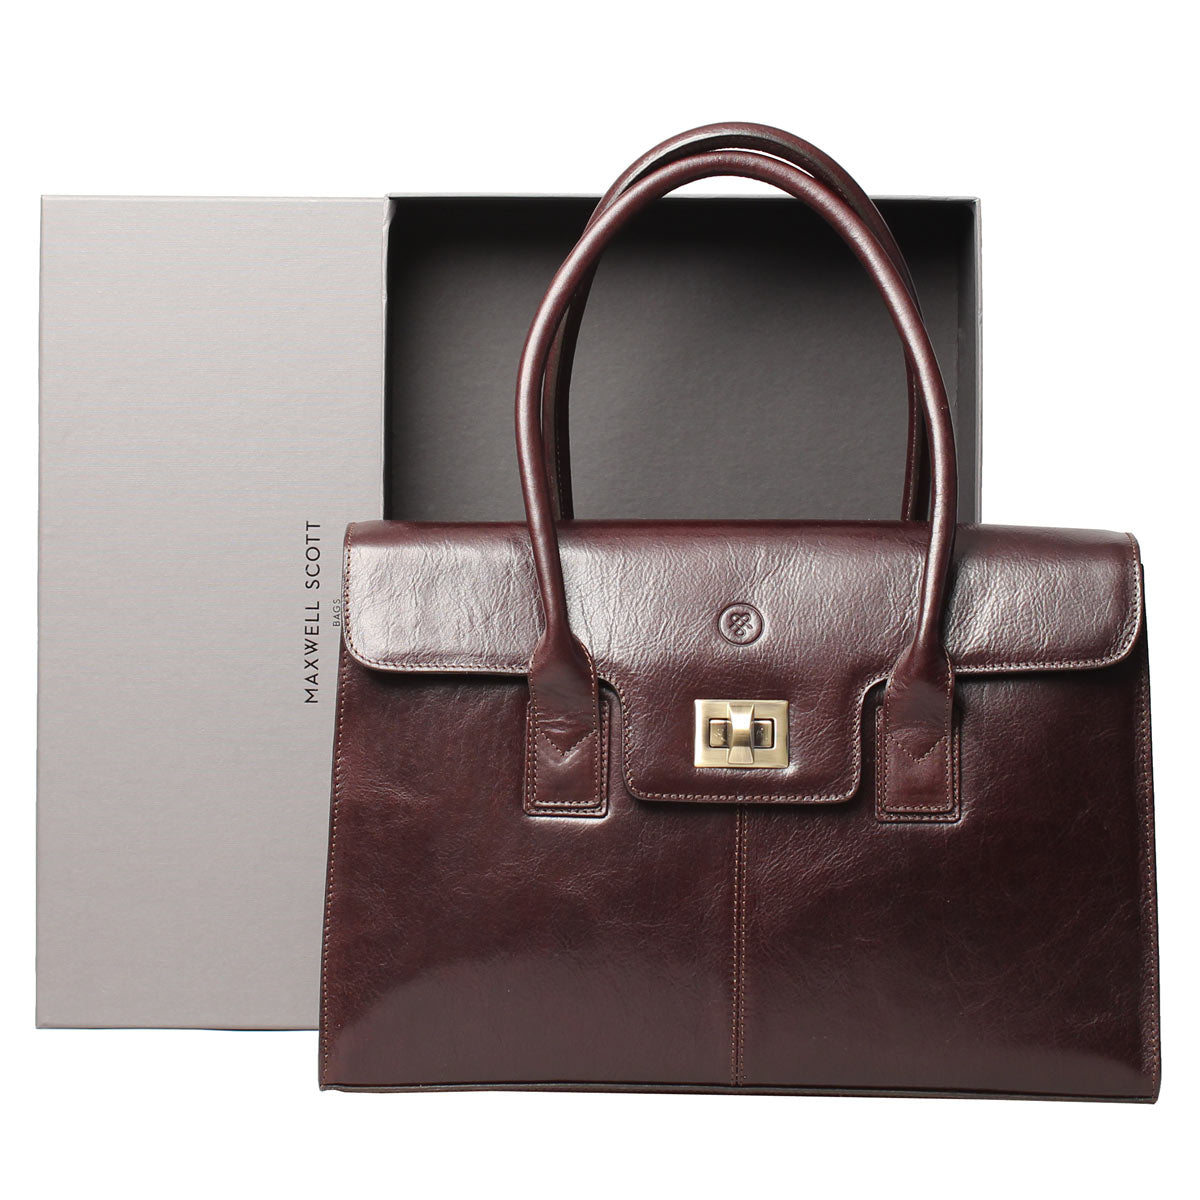 Image 5 of the 'Fabia' Chocolate Croco Veg-Tanned Leather Workbag